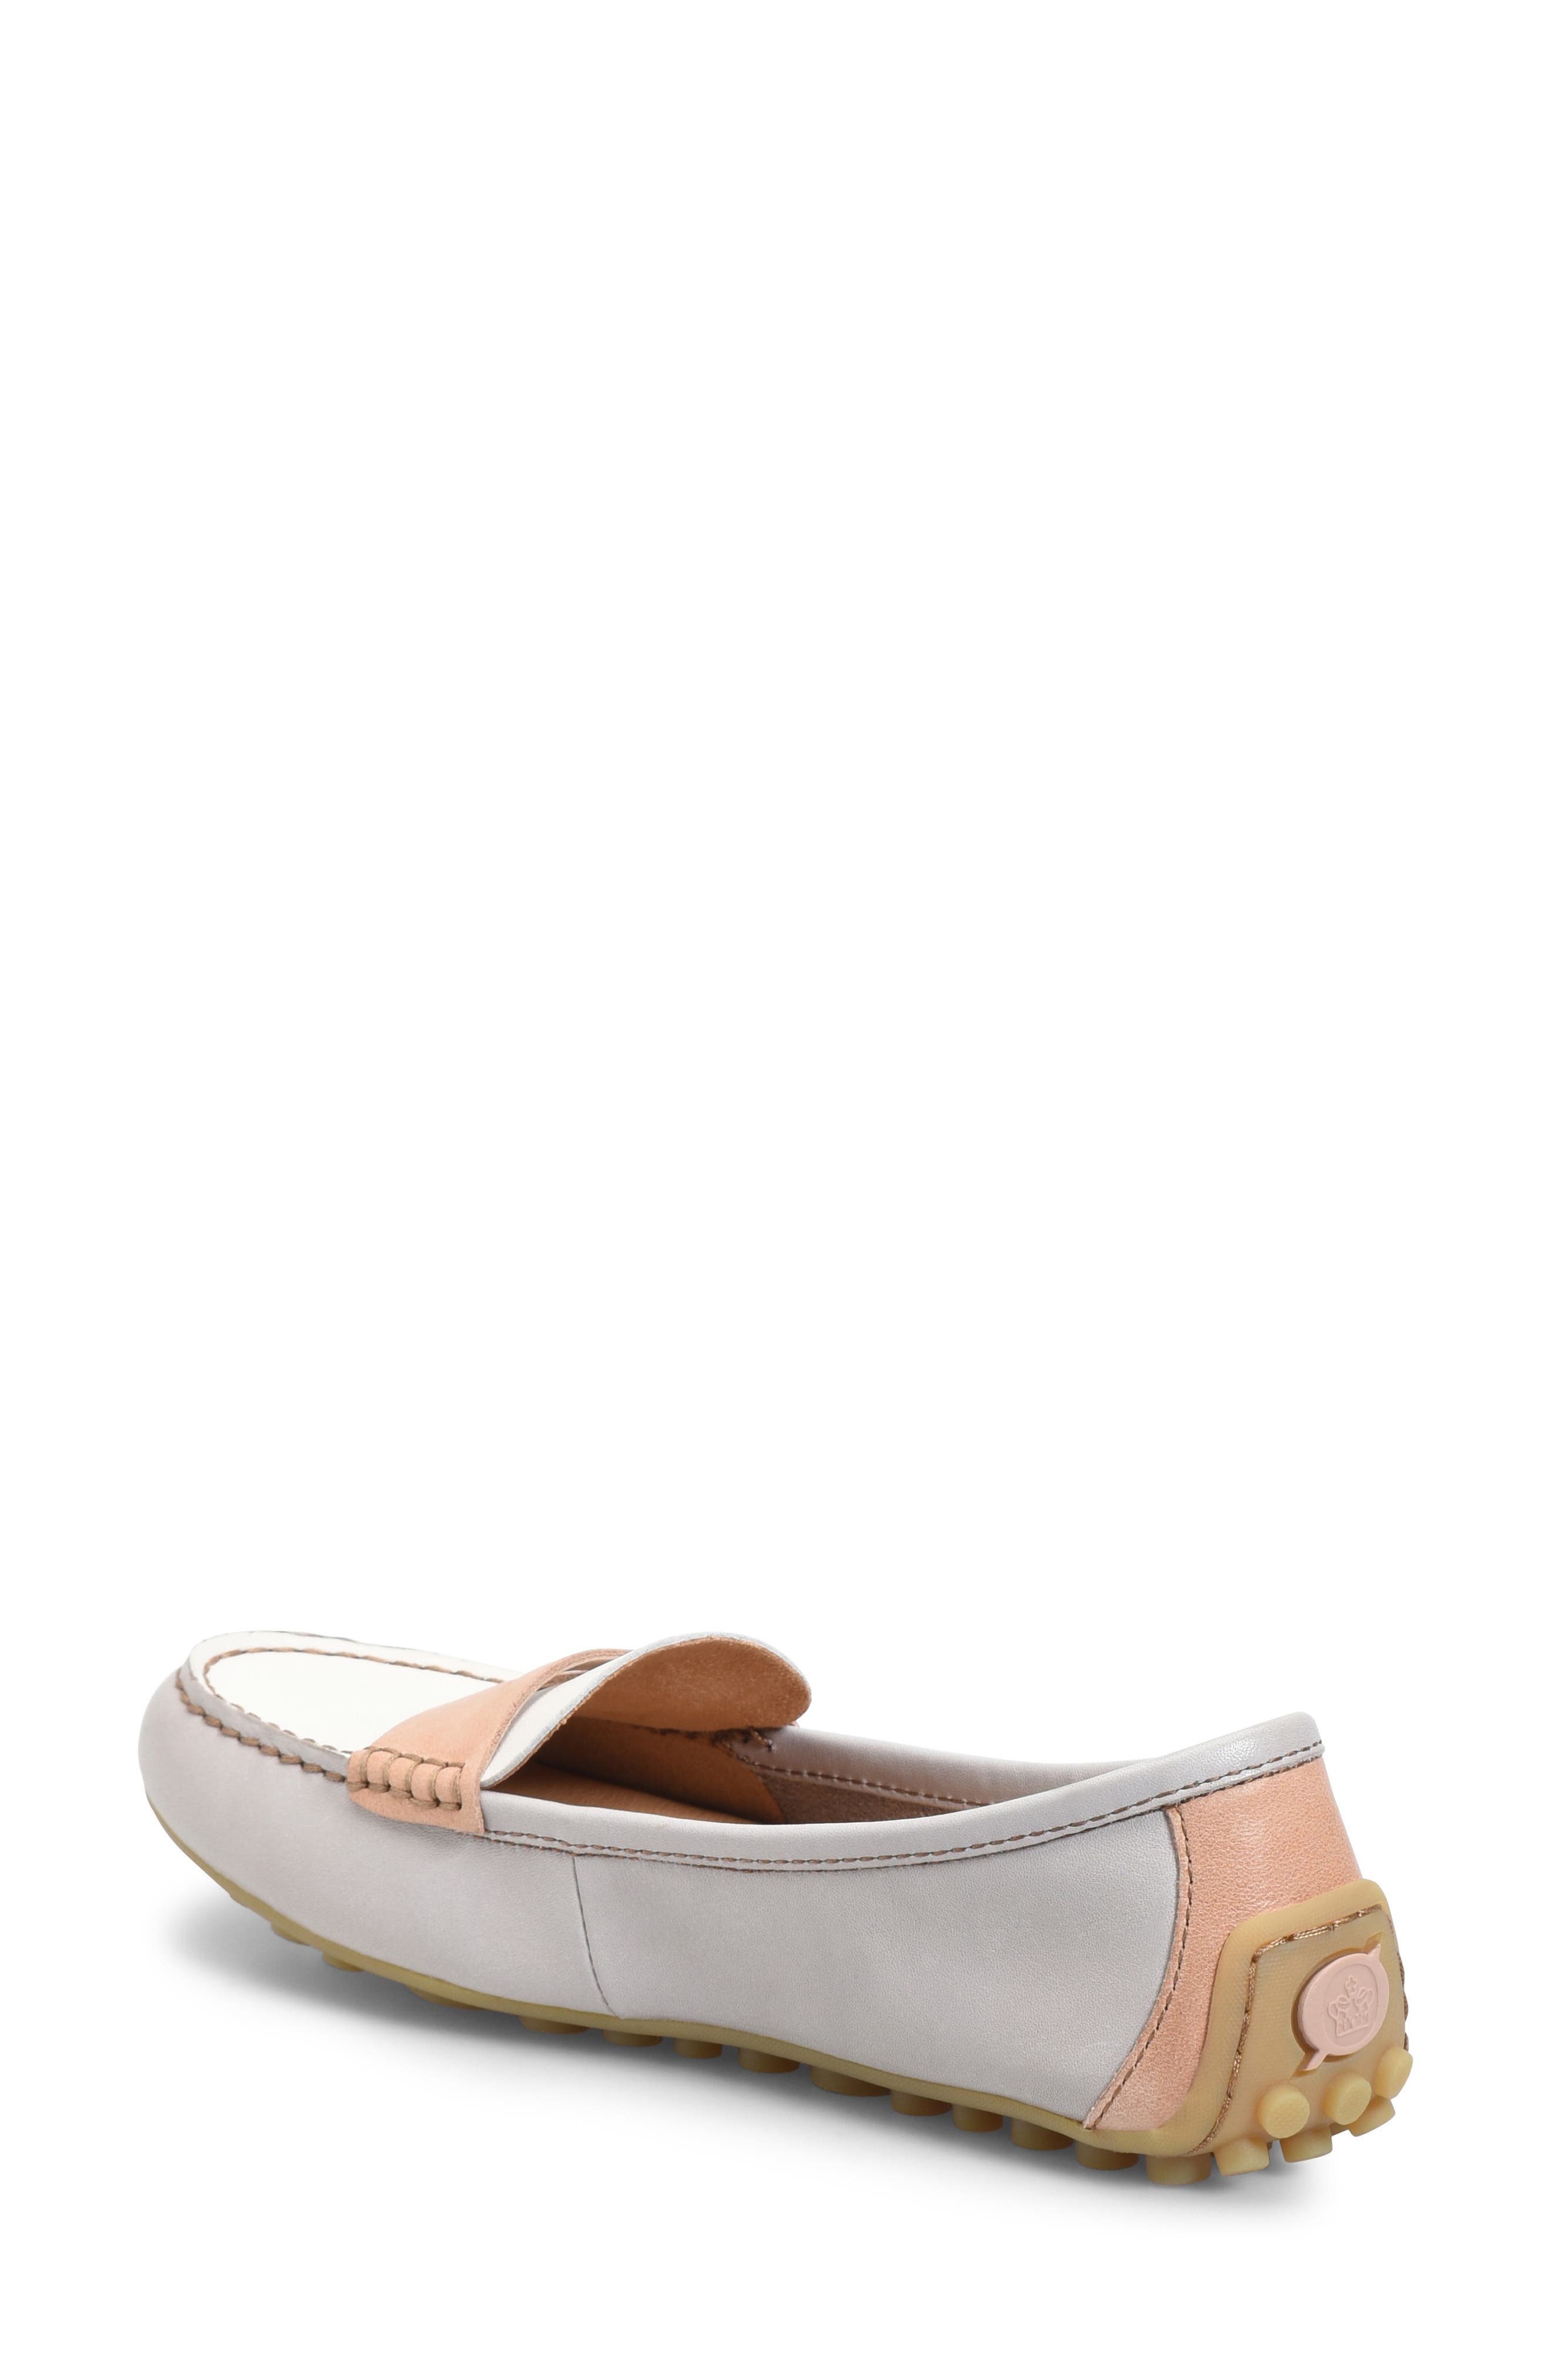 ,                             Malena Penny Loafer,                             Alternate thumbnail 2, color,                             LIT GREY/ WHITE/ BLUSH LEATHER